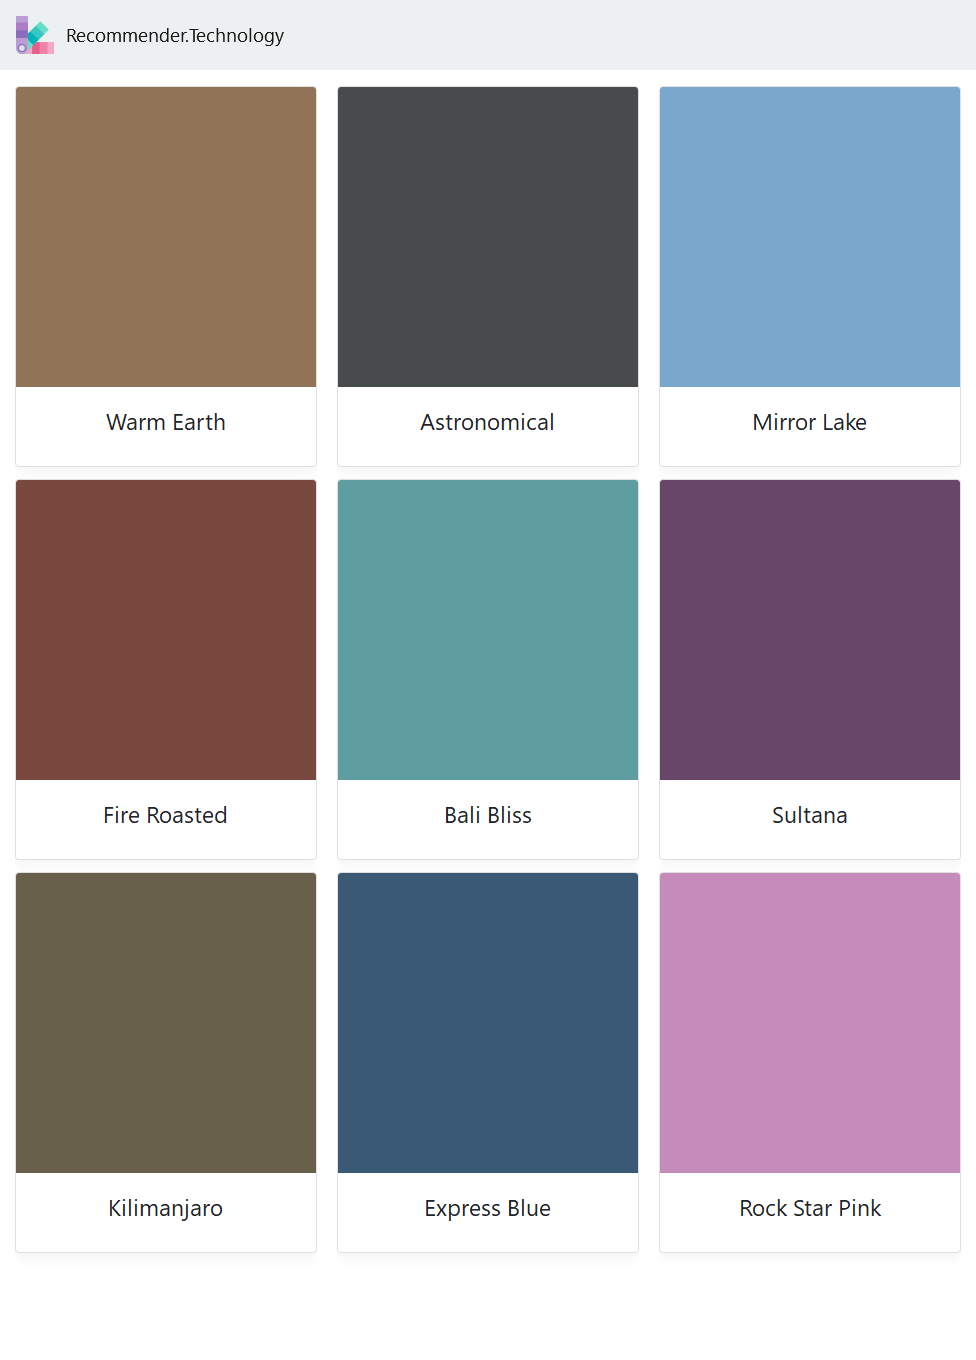 Warm Earth Fire Roasted Kilimanjaro Astronomical Bali Bliss Express Blue Mirror Lake Sultana Rock St Behr Paint Colors Paint Color Palettes Shasta Lake [ 1360 x 976 Pixel ]